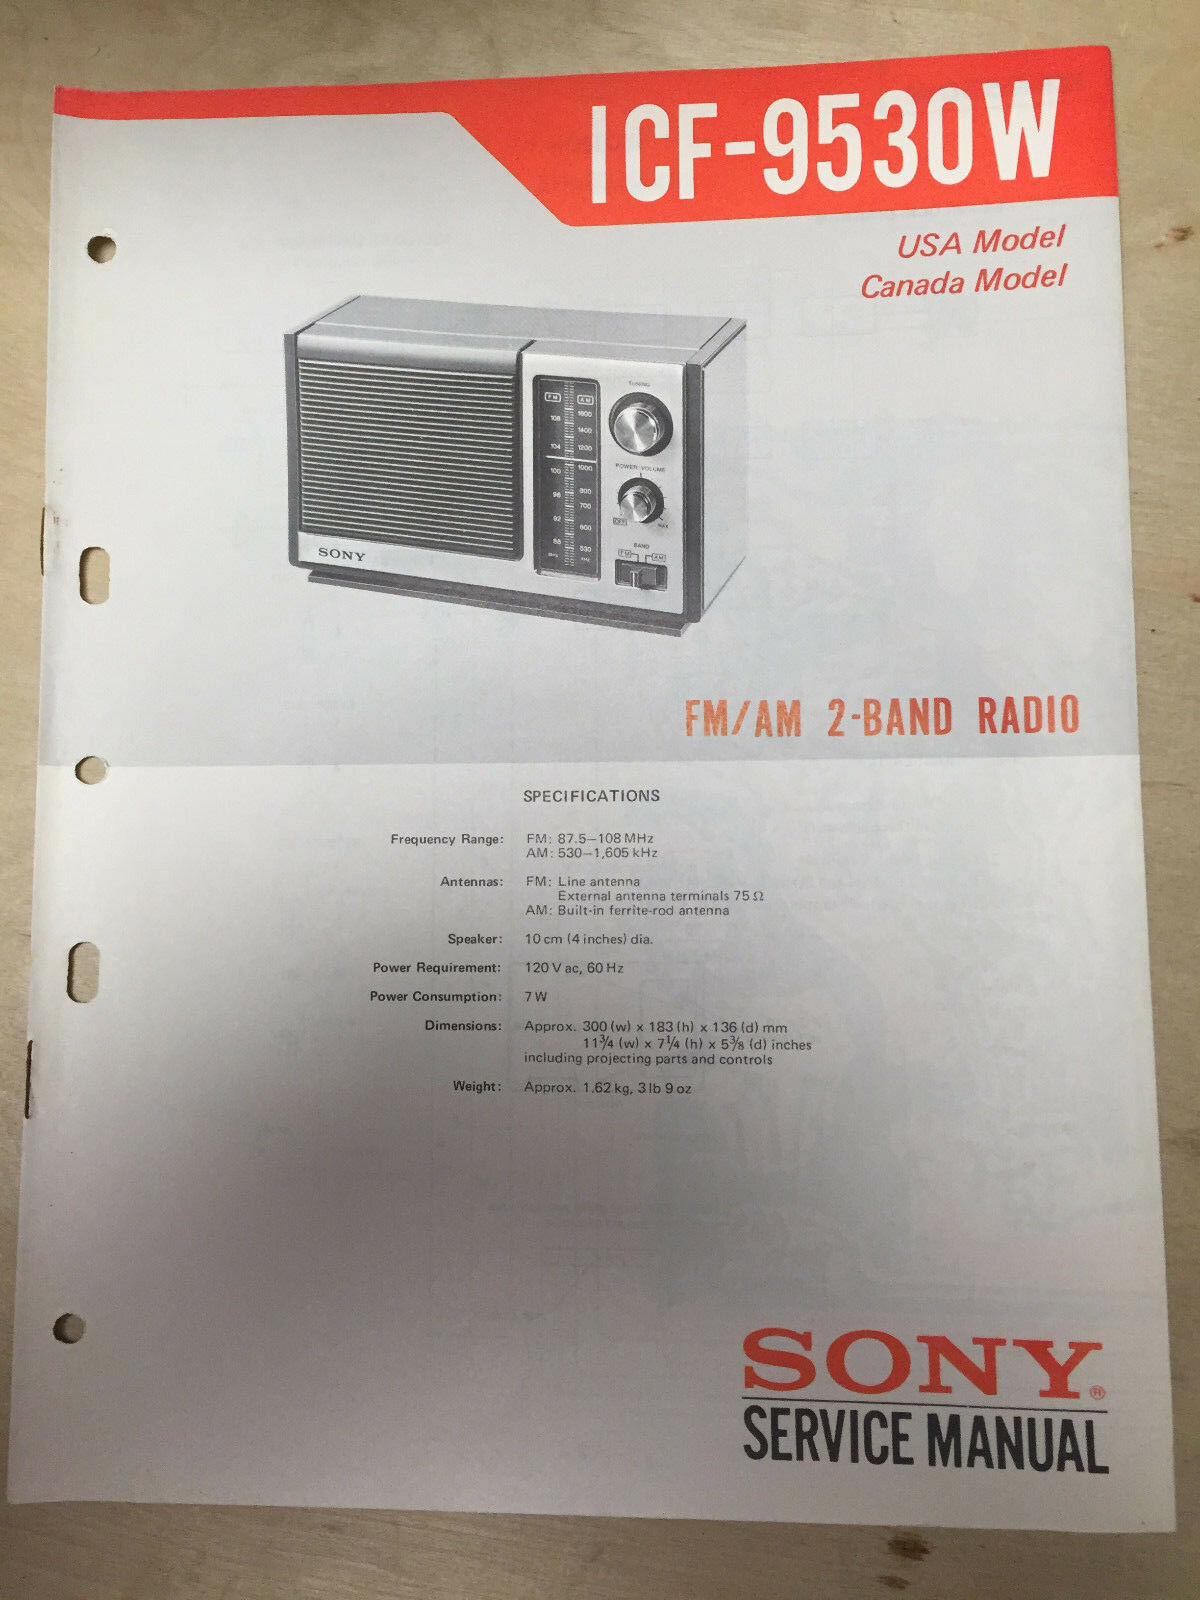 sony service manual for the icf 9530w receiver radio repair rh picclick com Toshiba Laptop Repair Manual Toshiba TV Service Manual